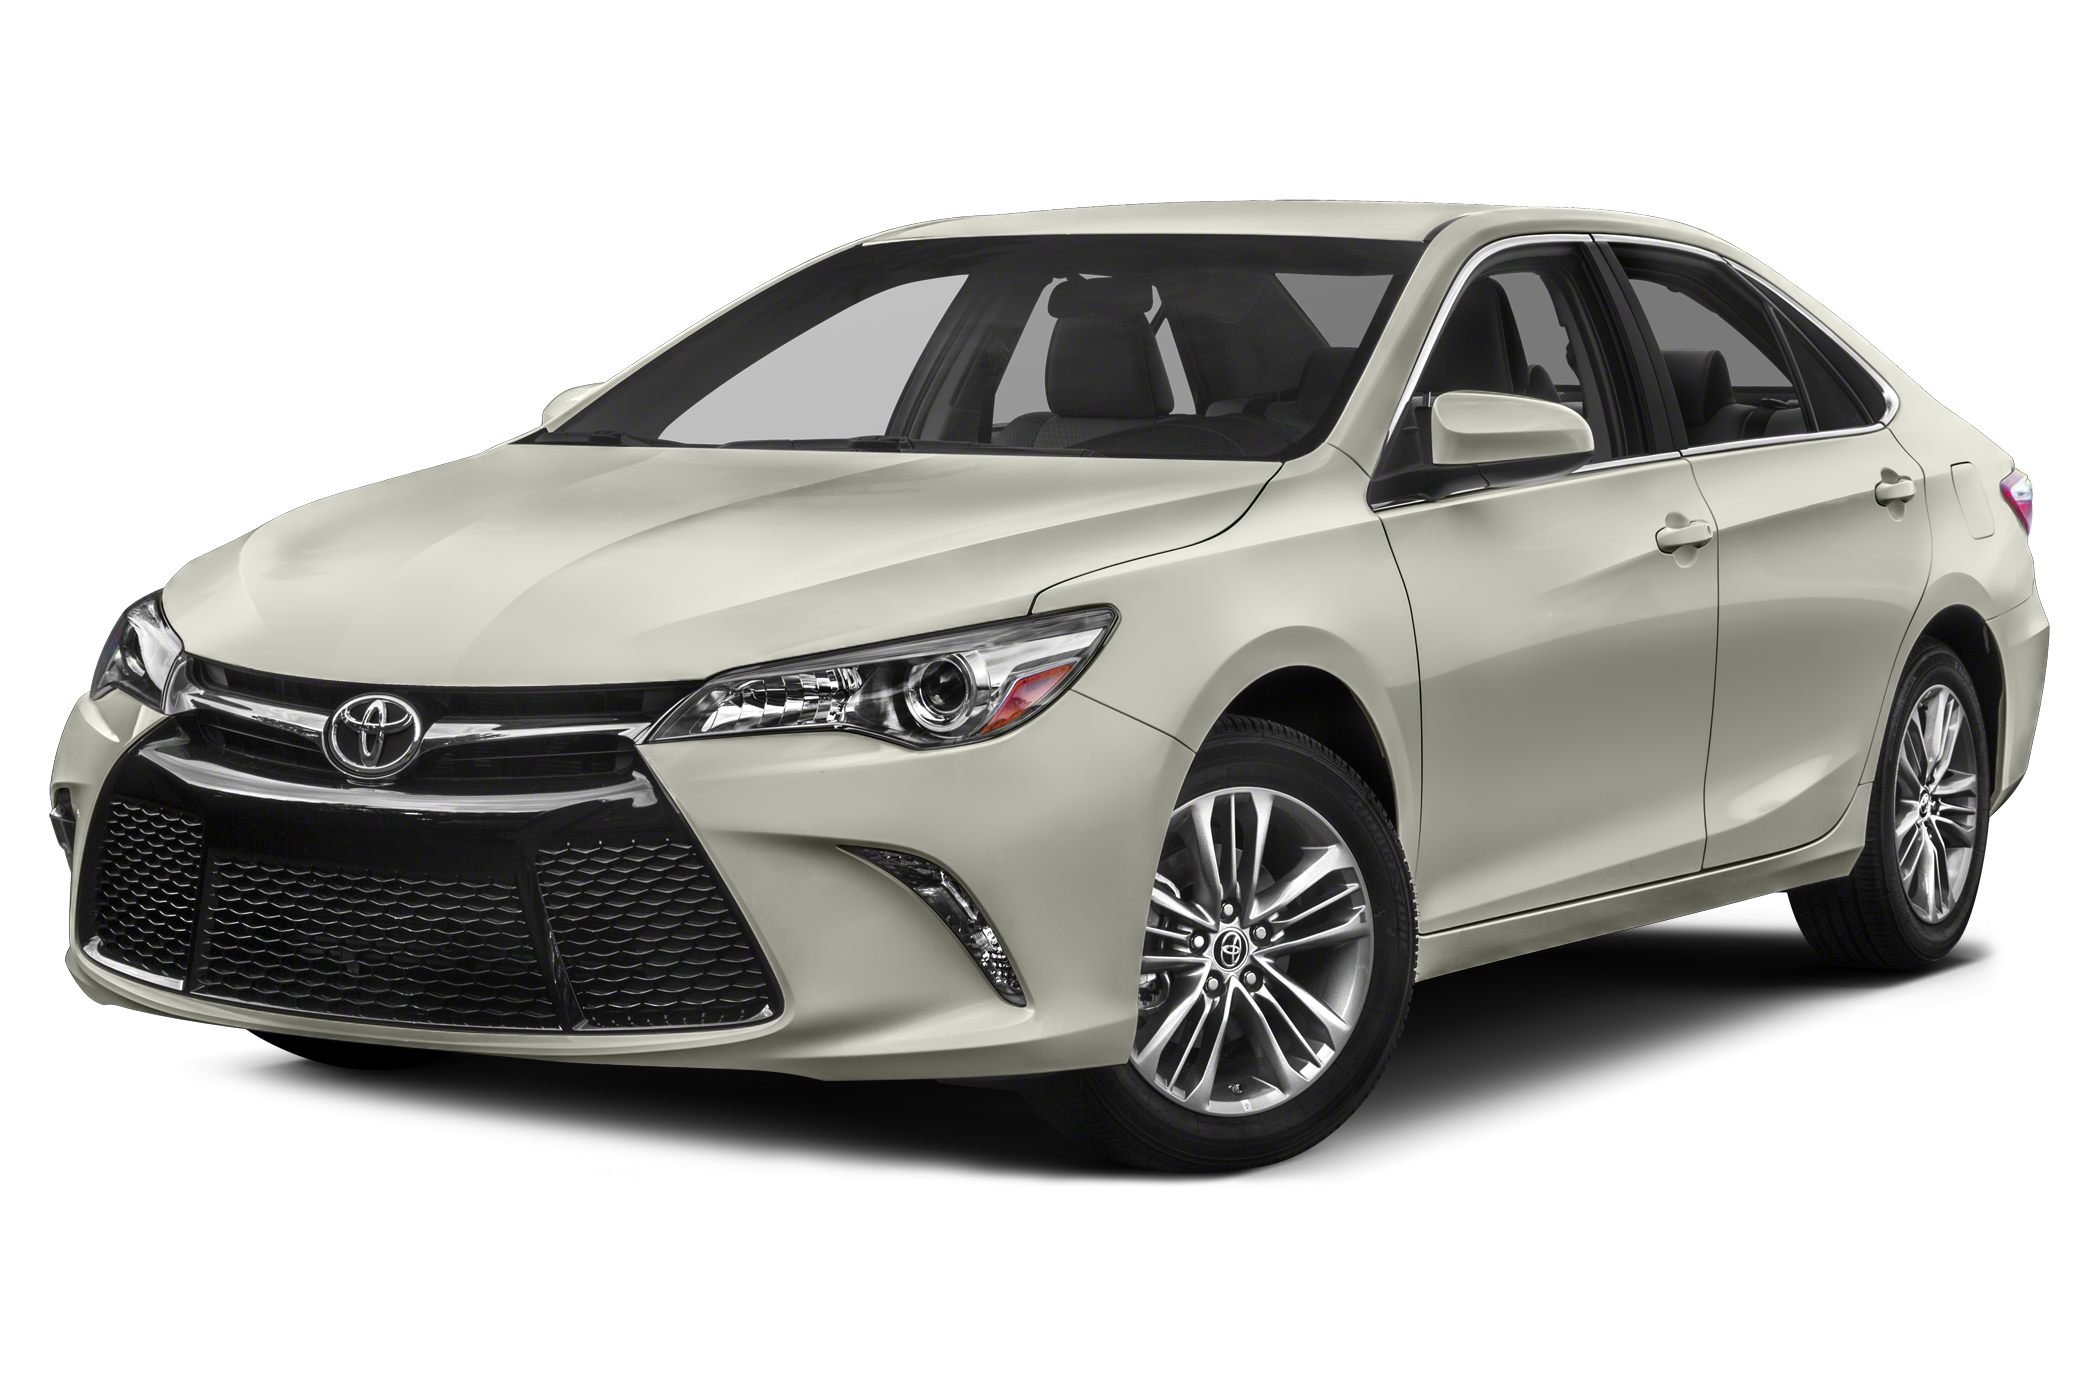 2015 Toyota Camry SE Sedan for sale in Bryan for $26,628 with 0 miles.